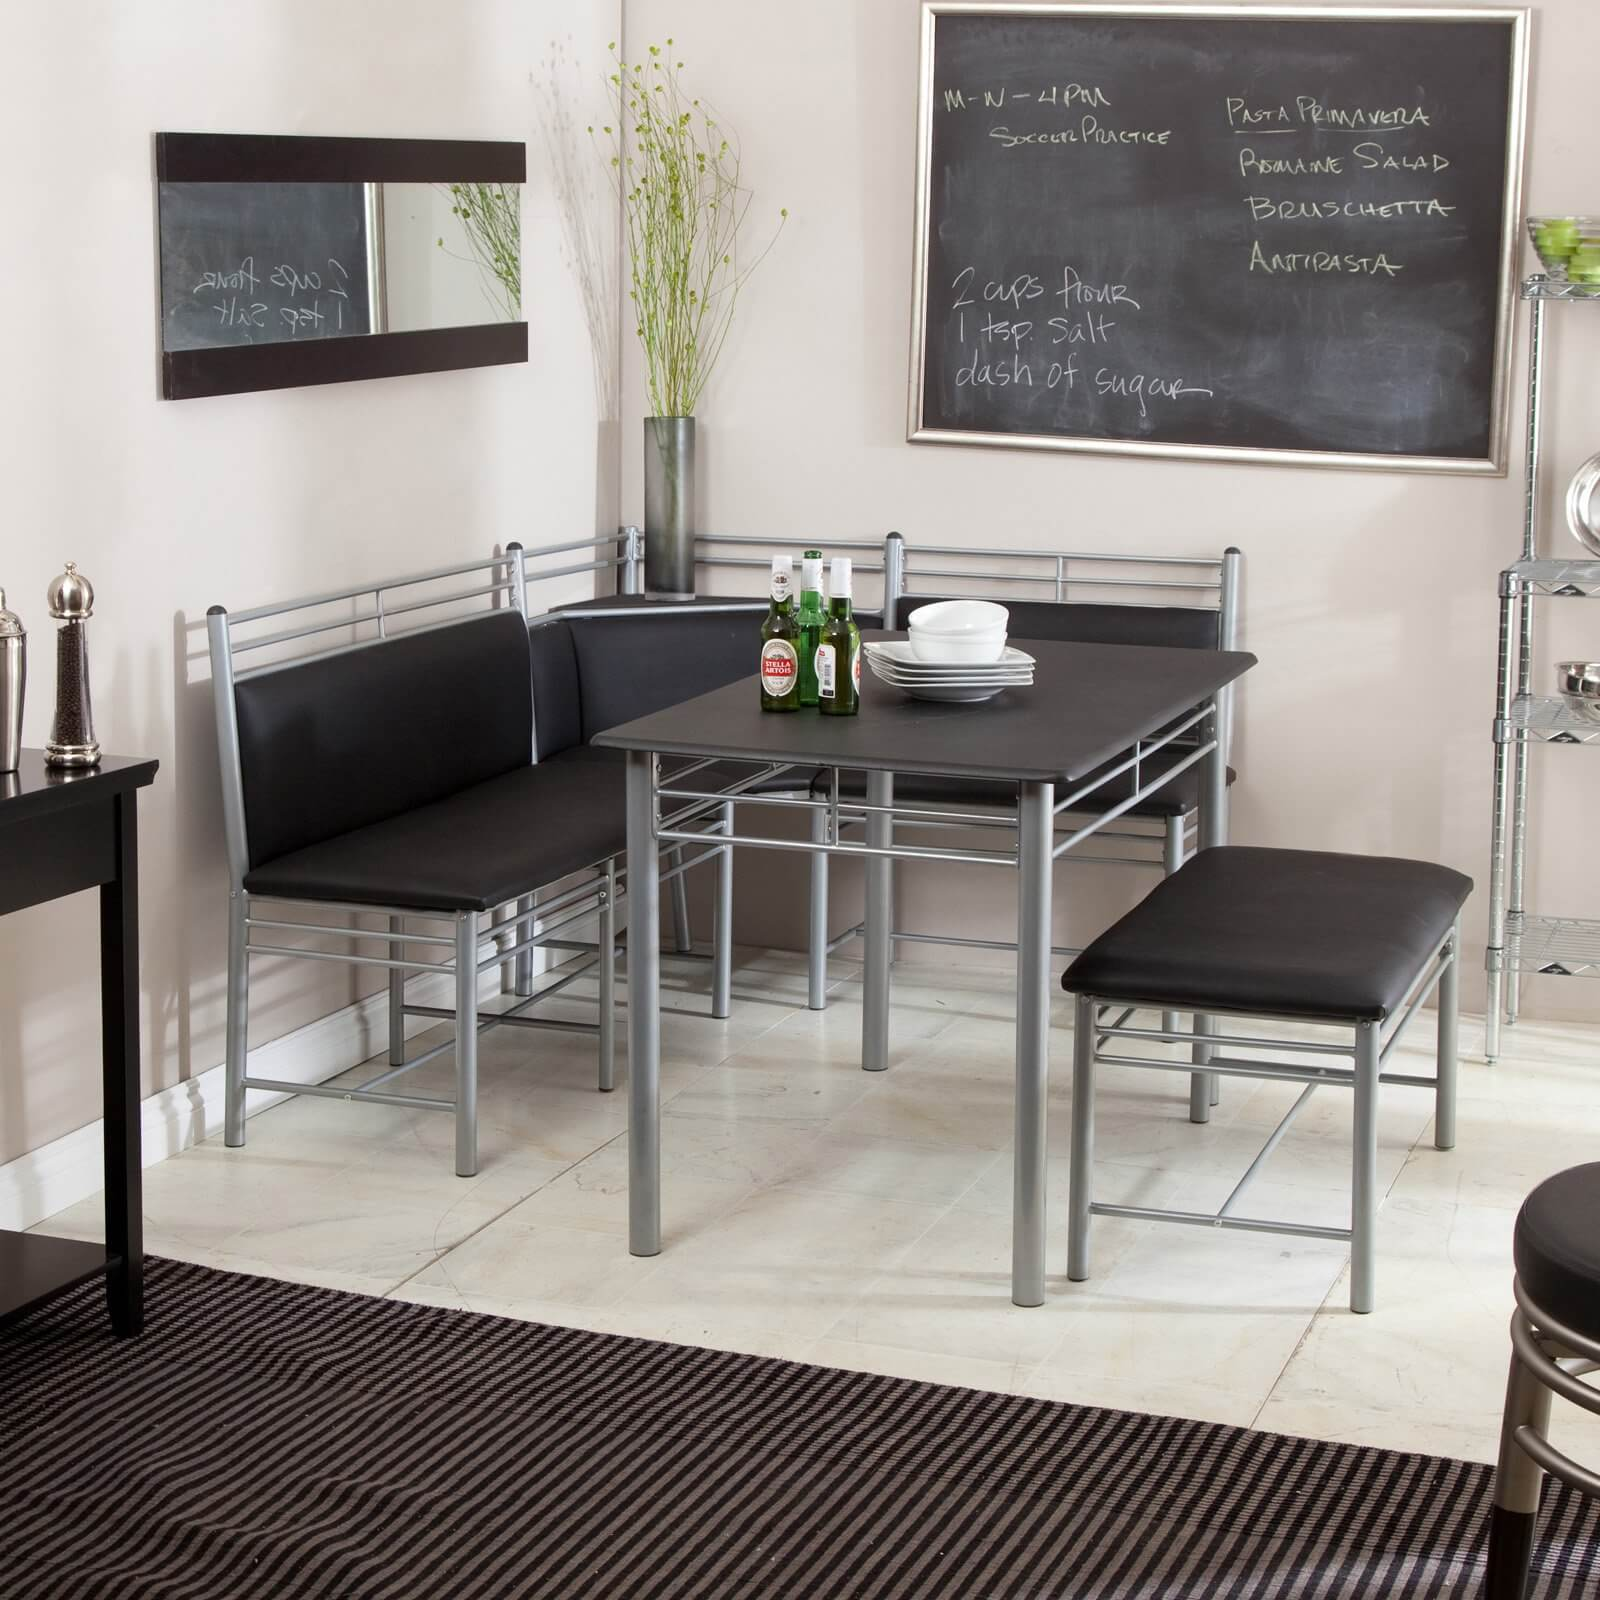 breakfast nook furniture sets kitchen table and chairs Modern Breakfast Nook Set